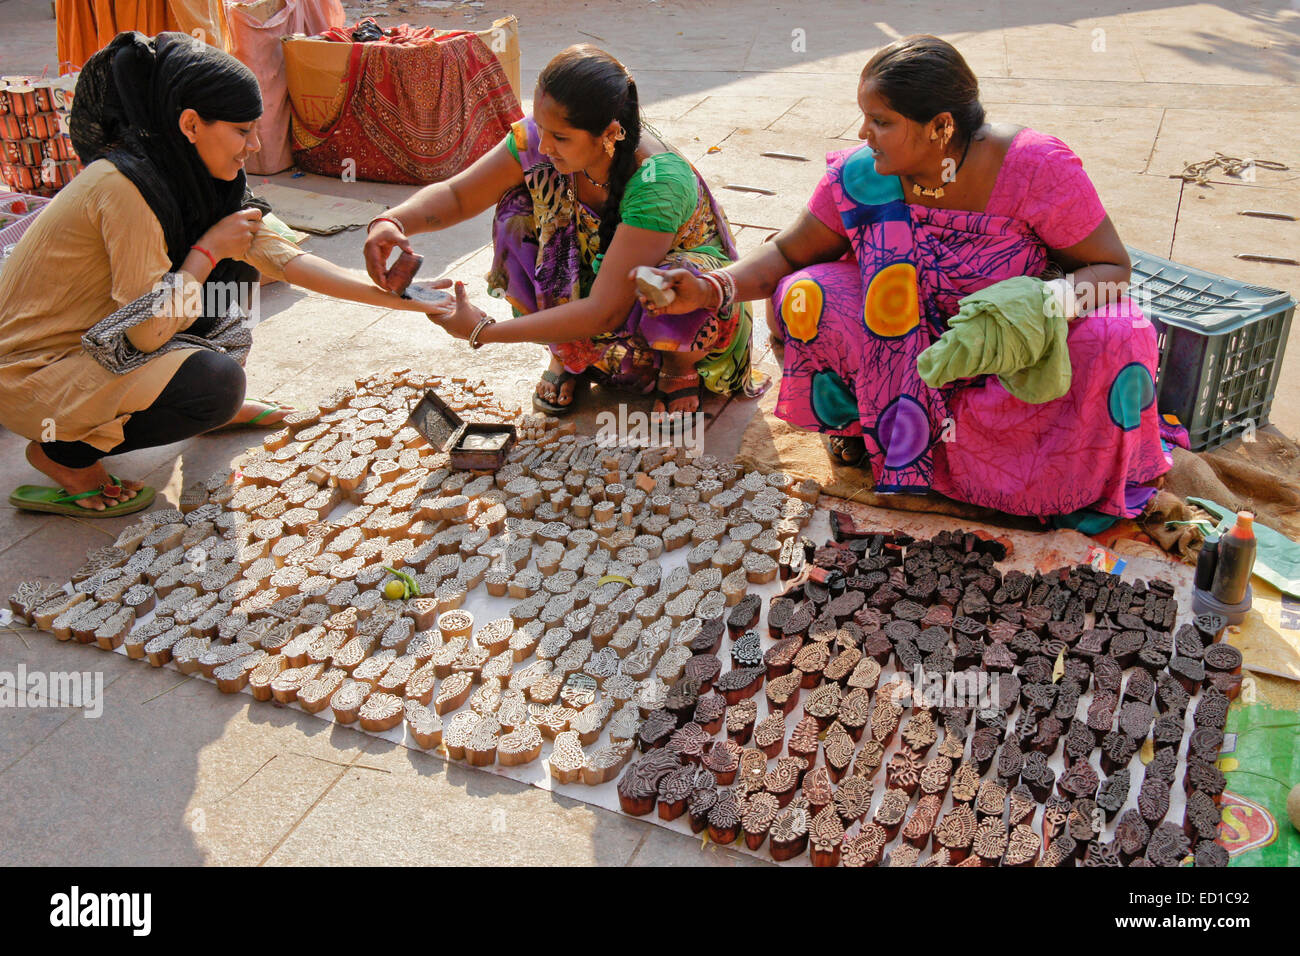 Women selling carved wood henna stamps in market, Ahmedabad, Gujarat, India - Stock Image